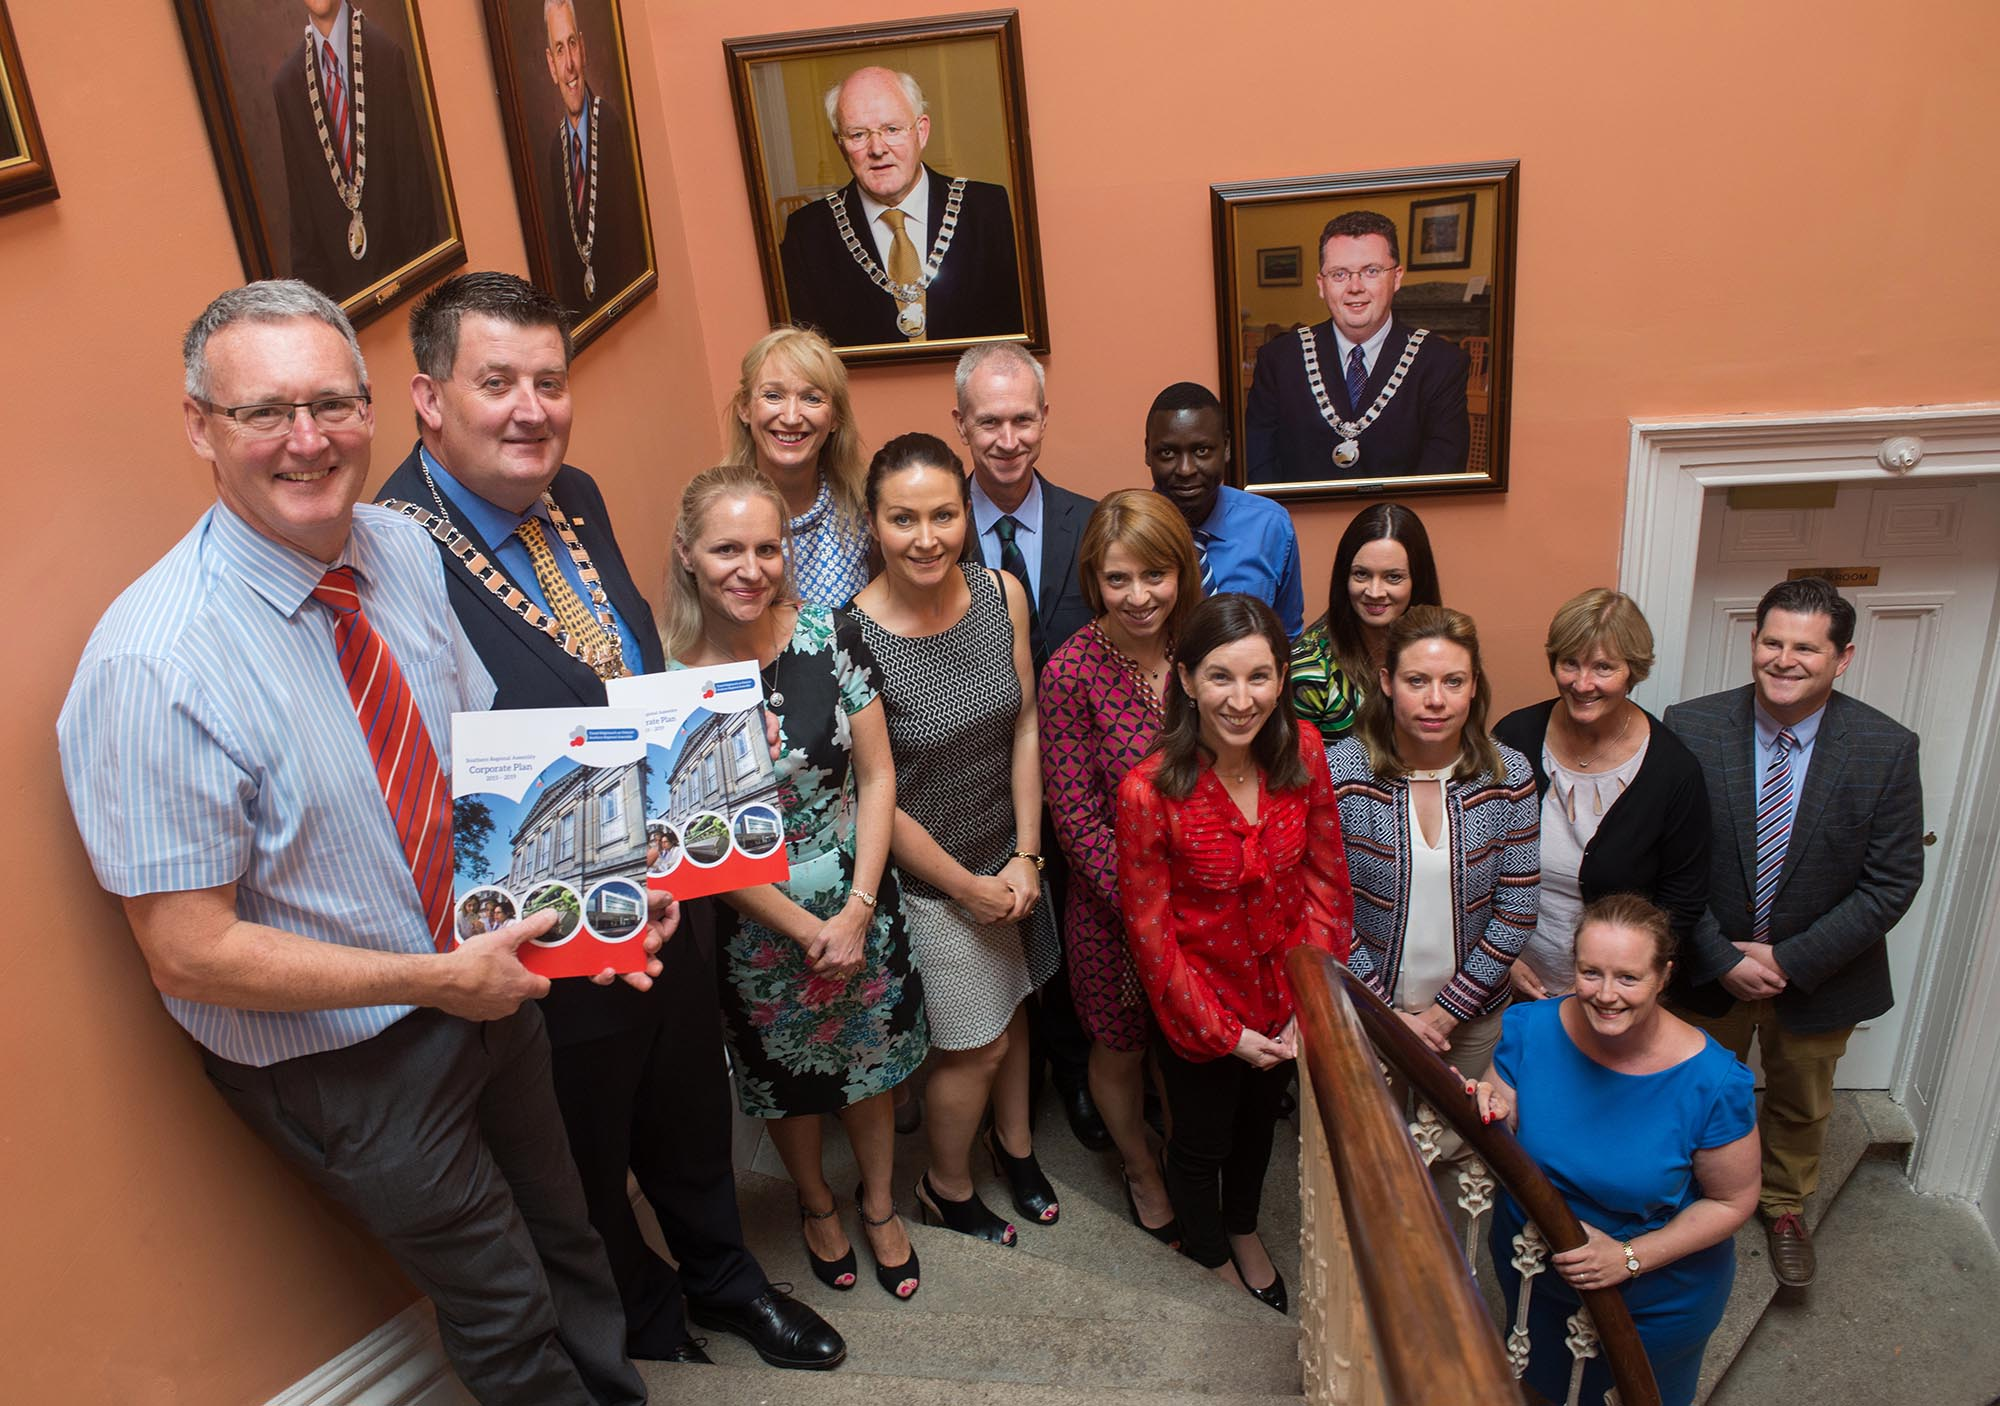 Staff and Cllr. Damien Geoghegan at the launch of the Assembly's Corporate Plan 2015-2019